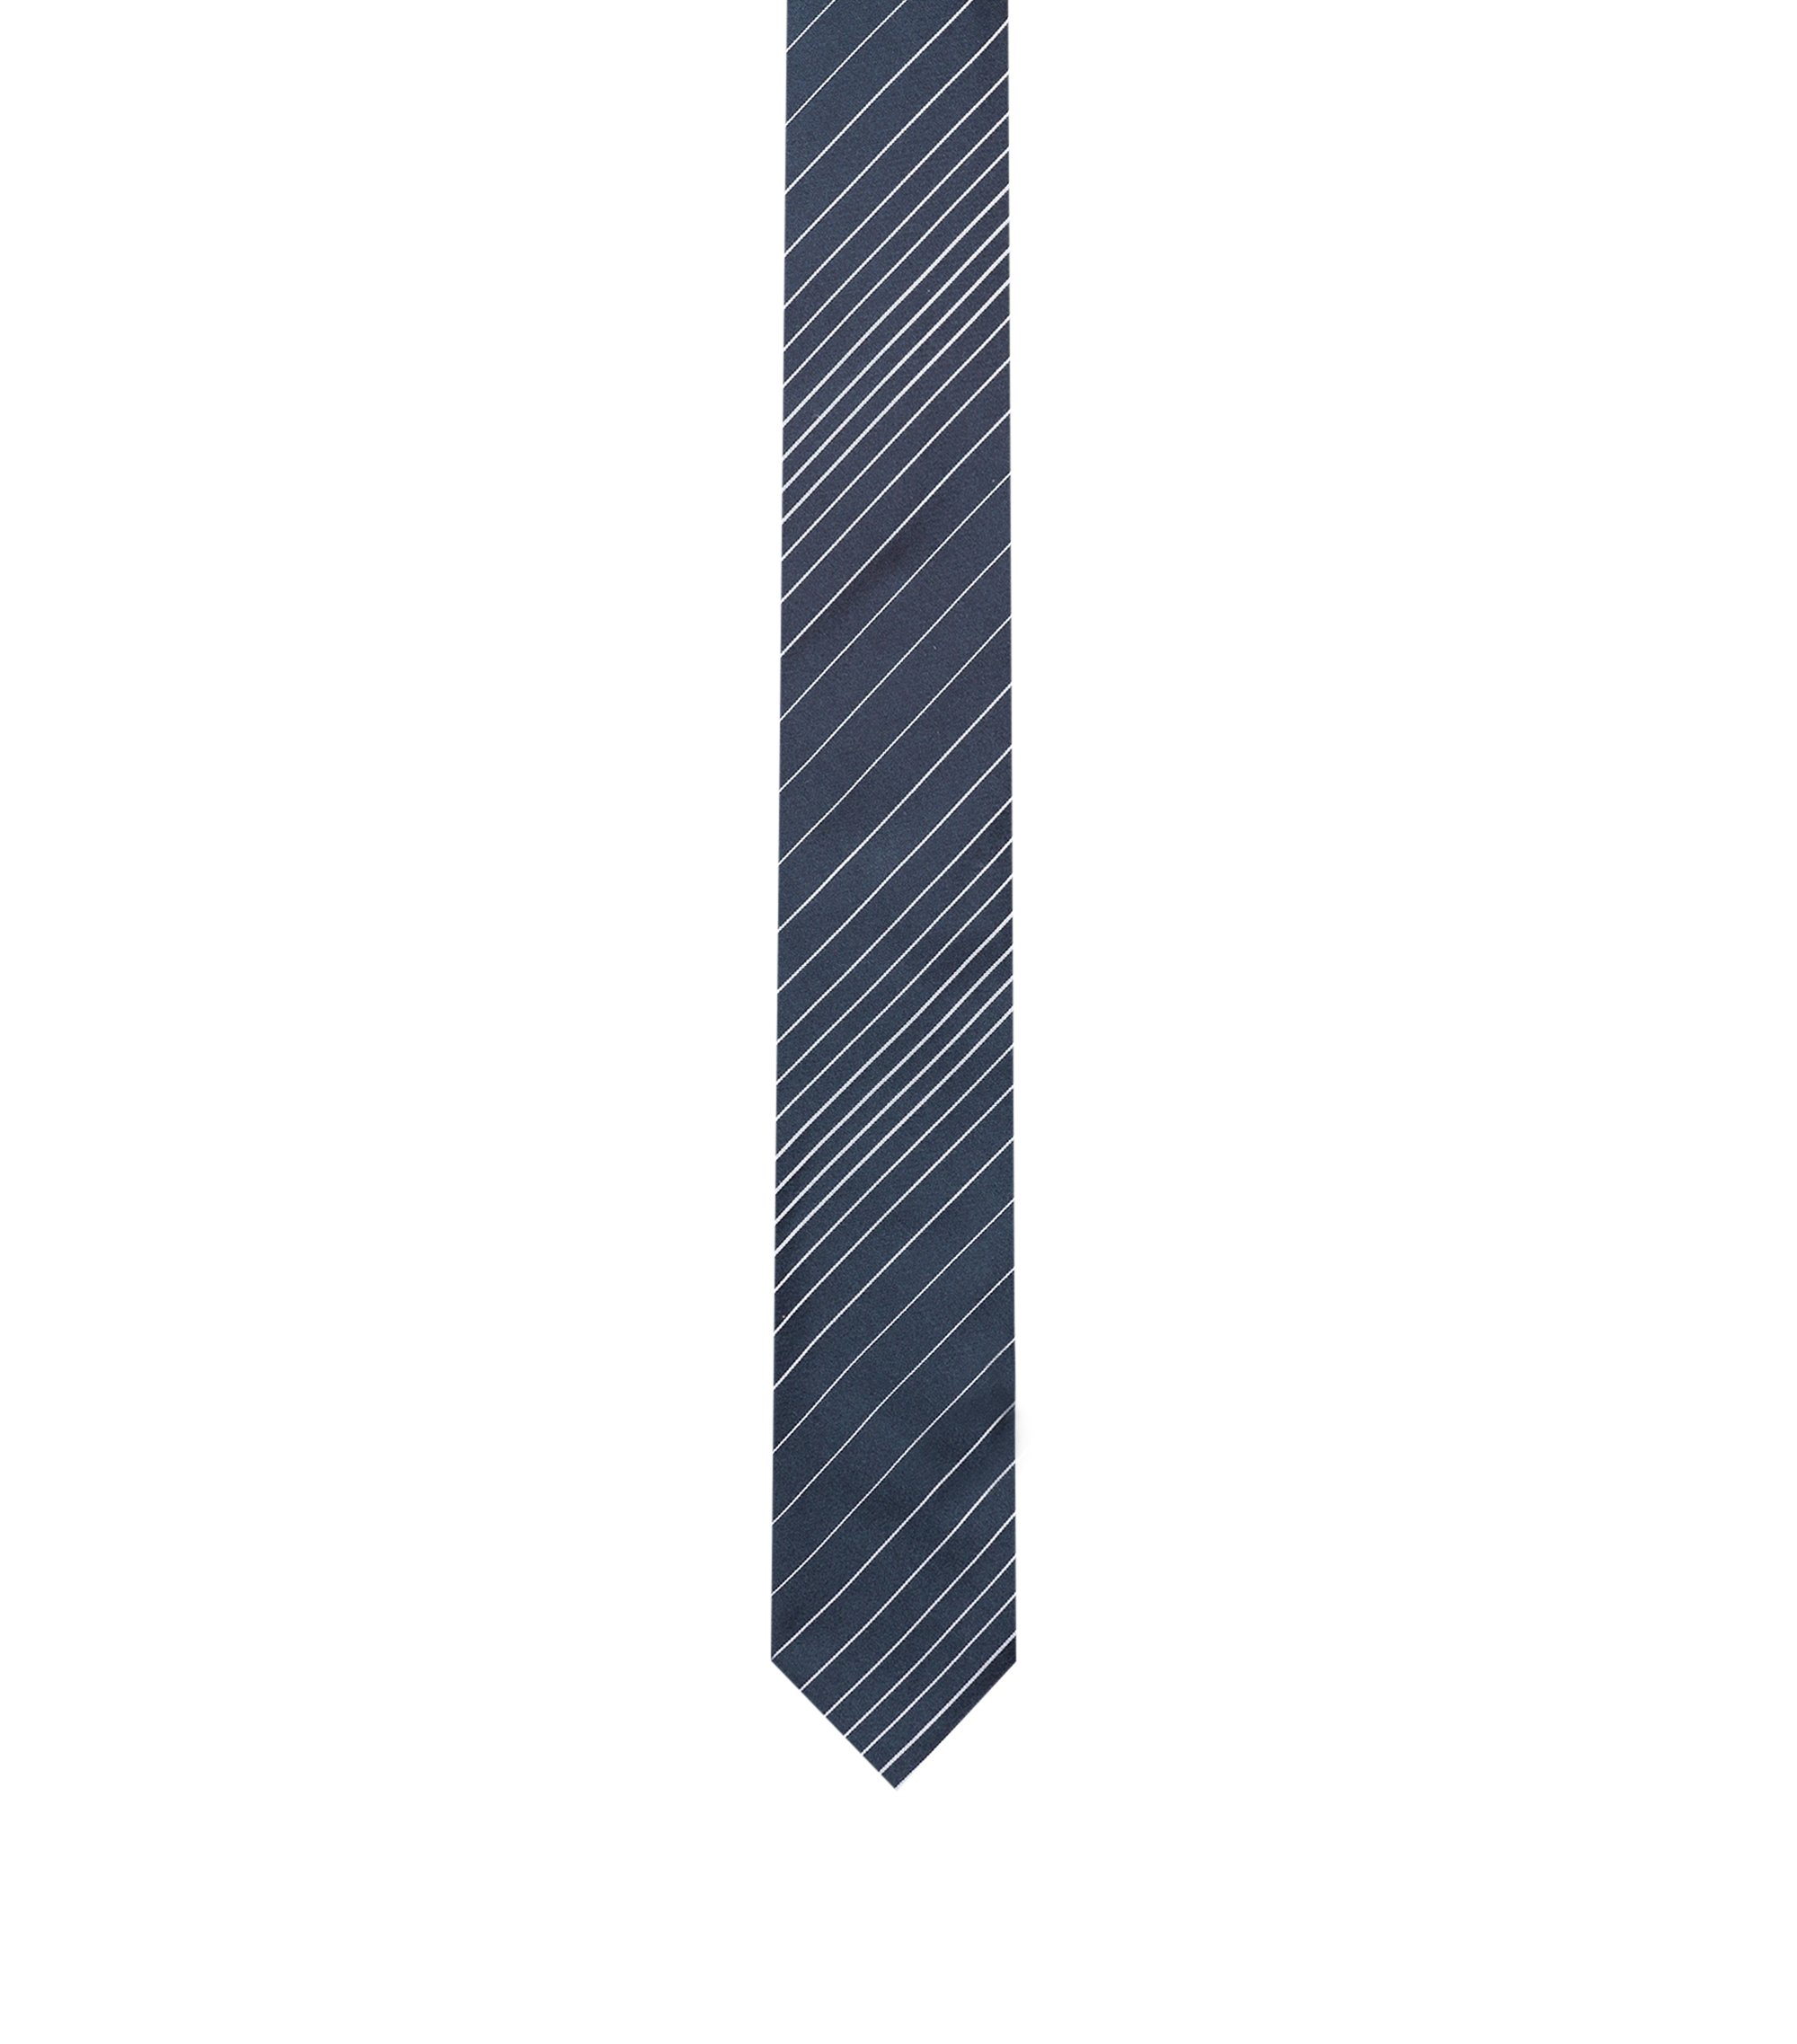 Silk-jacquard tie with diagonal stripes, Patterned